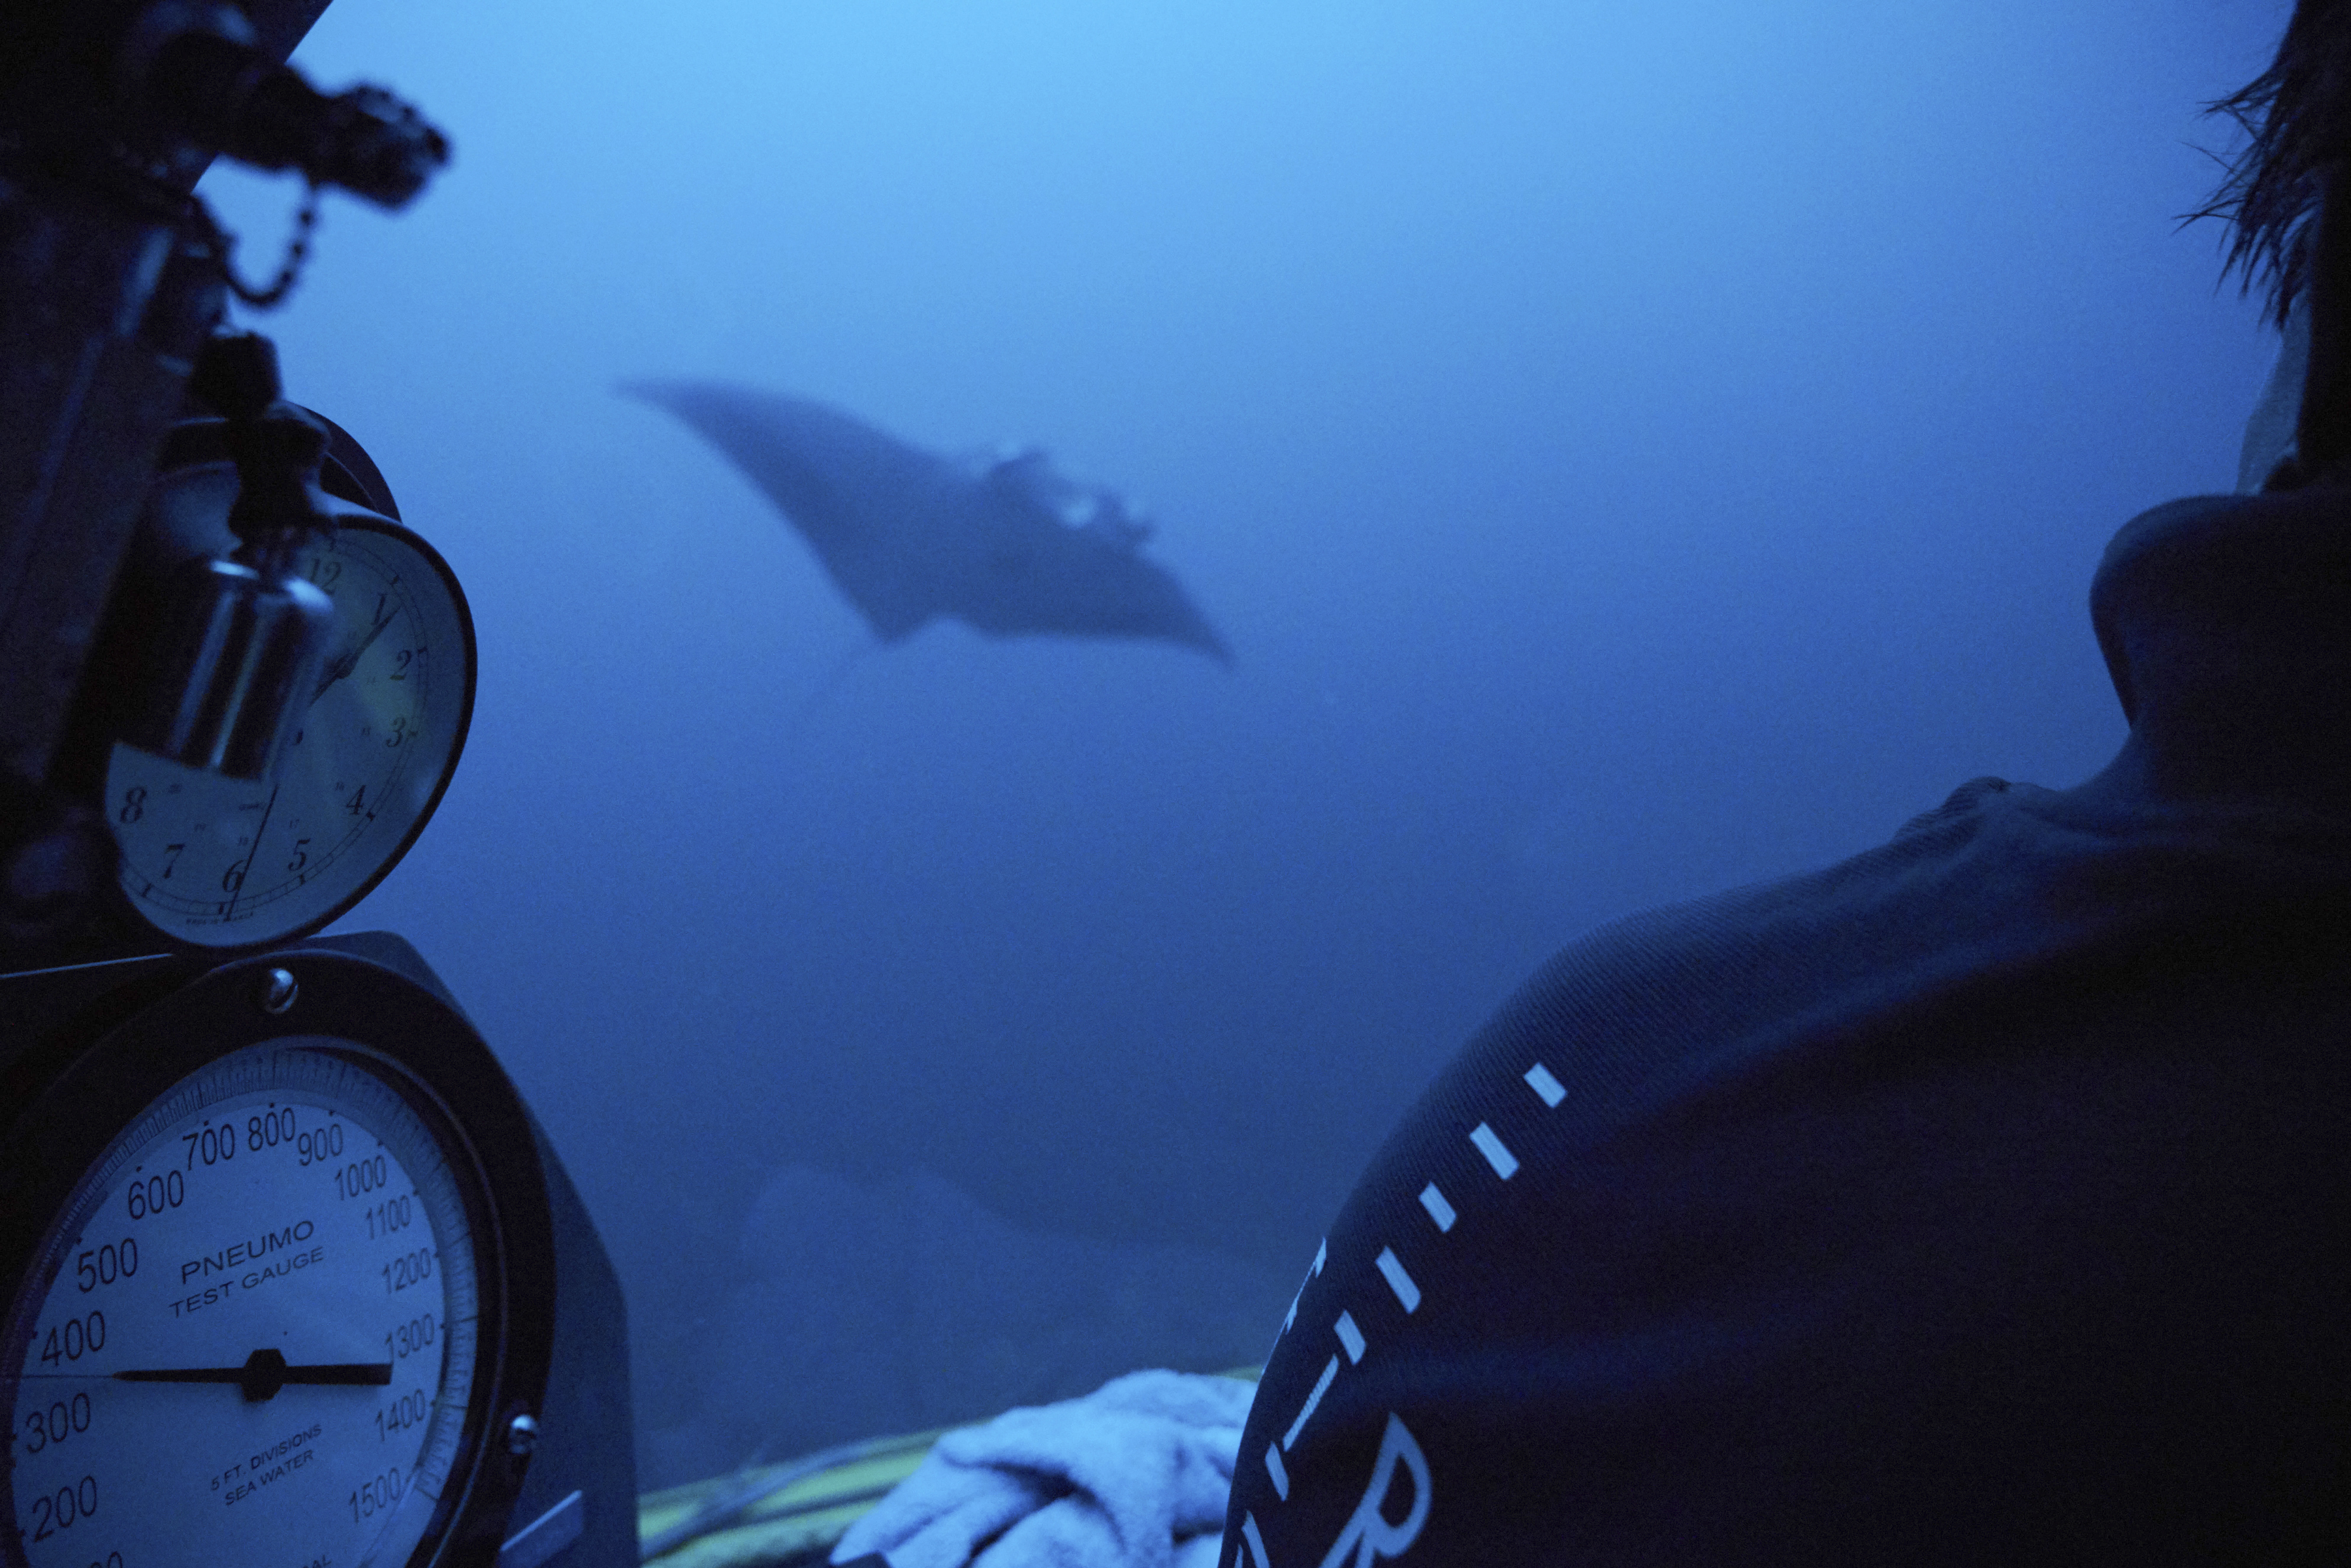 A manta ray swims near the submersible during a dive off the coast of the island of St. Joseph in the Seychelles, April 8, 2019. For more than a month researchers from Nekton, a British-led scientific research charity, have been exploring deep below ...